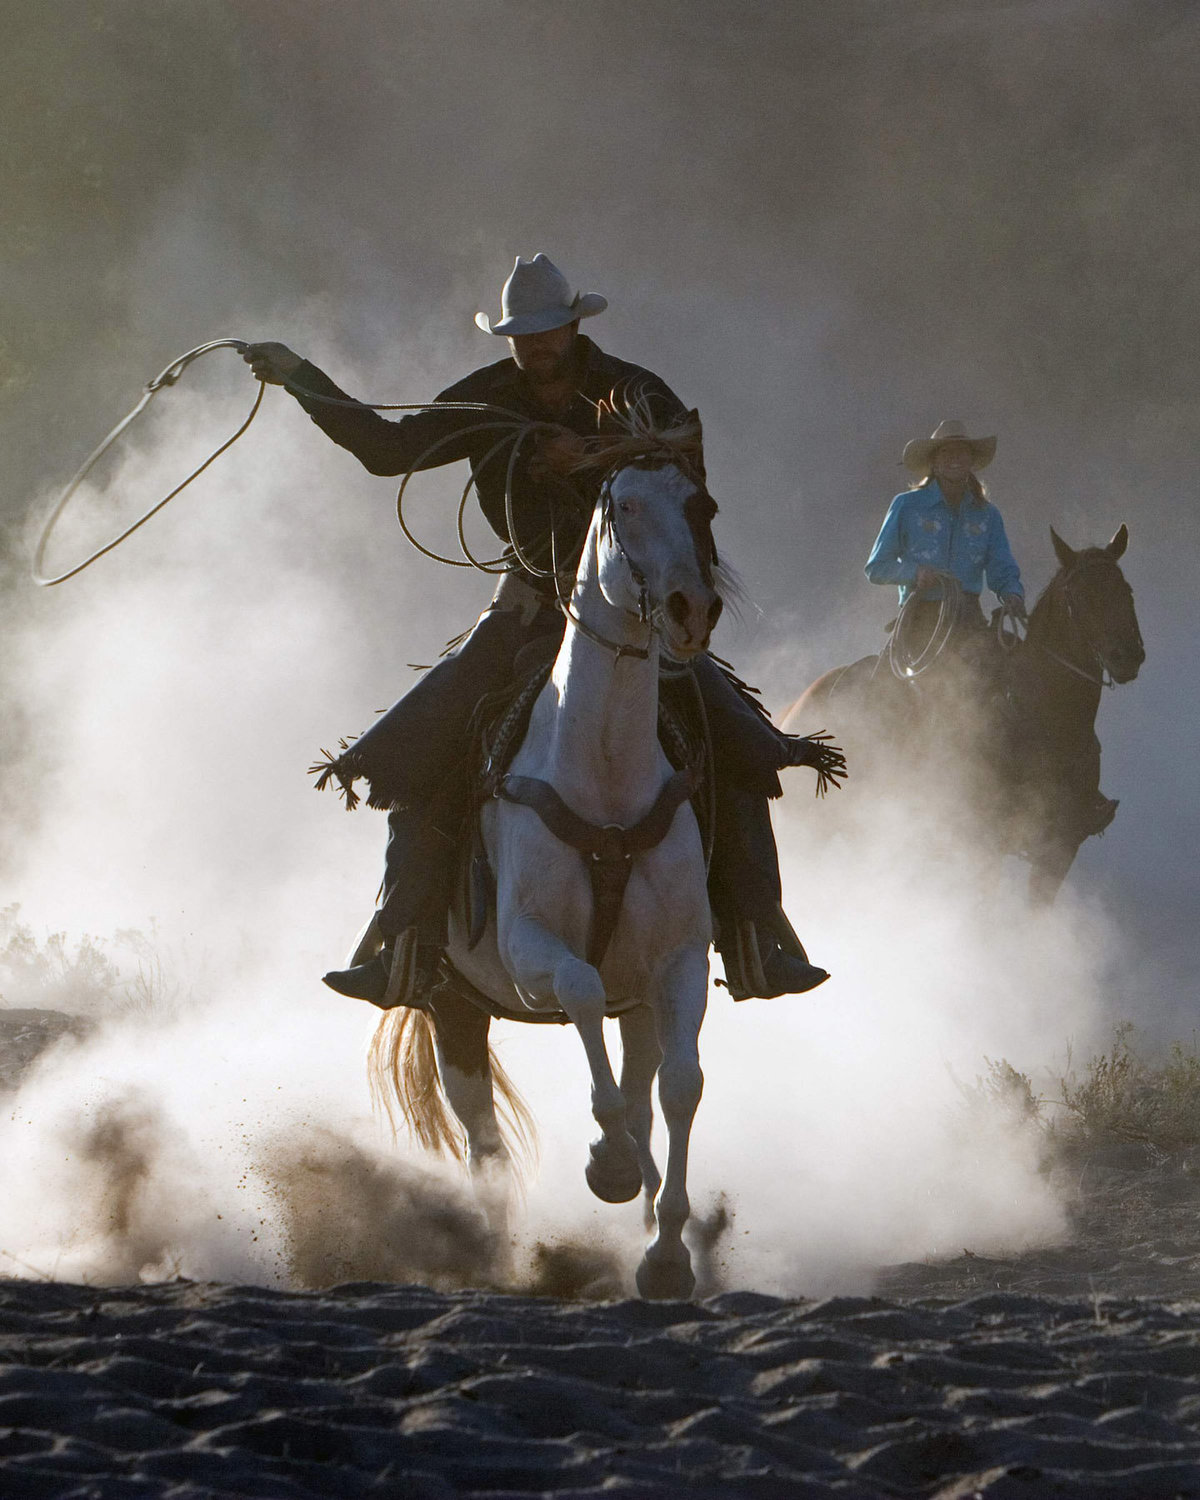 cowboy running in dust Lynette Smith Photography